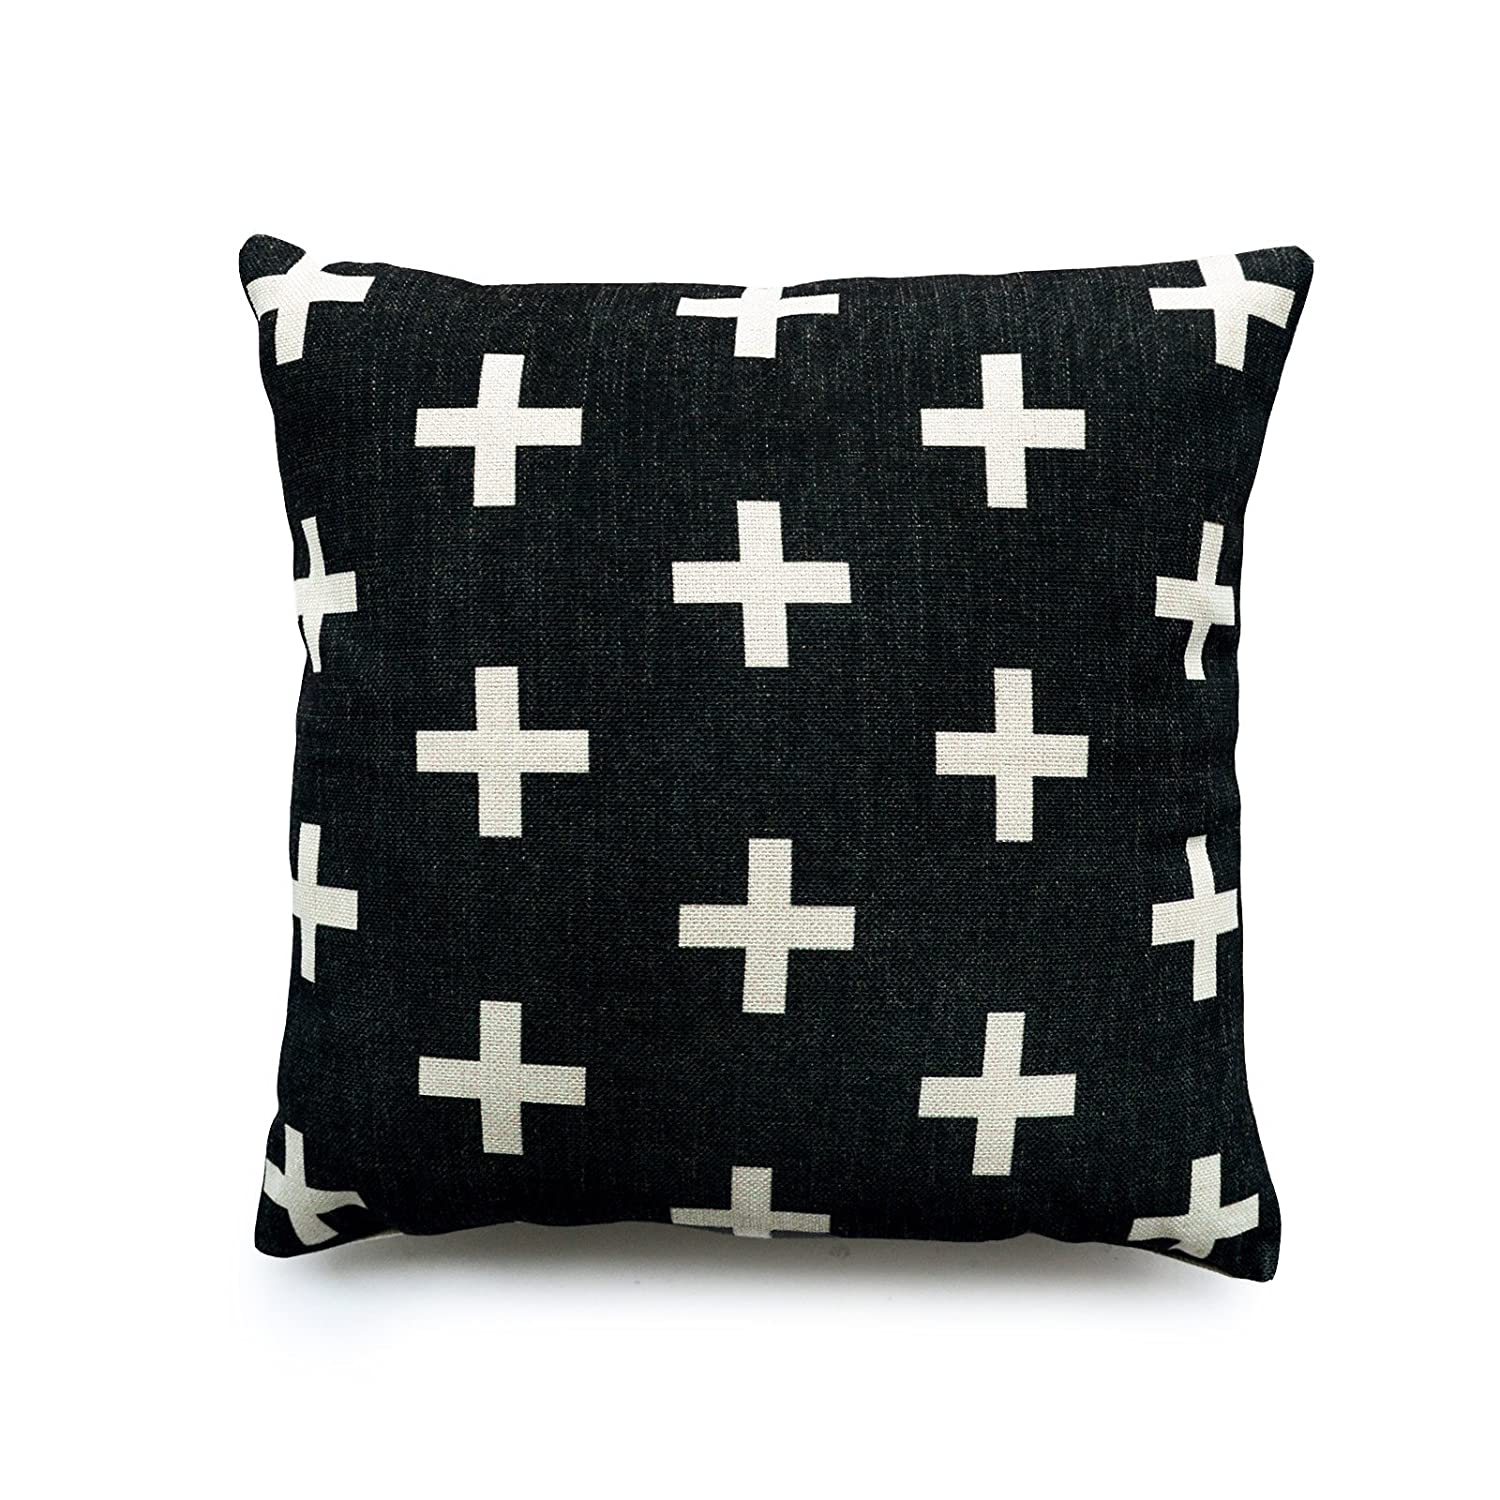 Black and white pillow with crosses